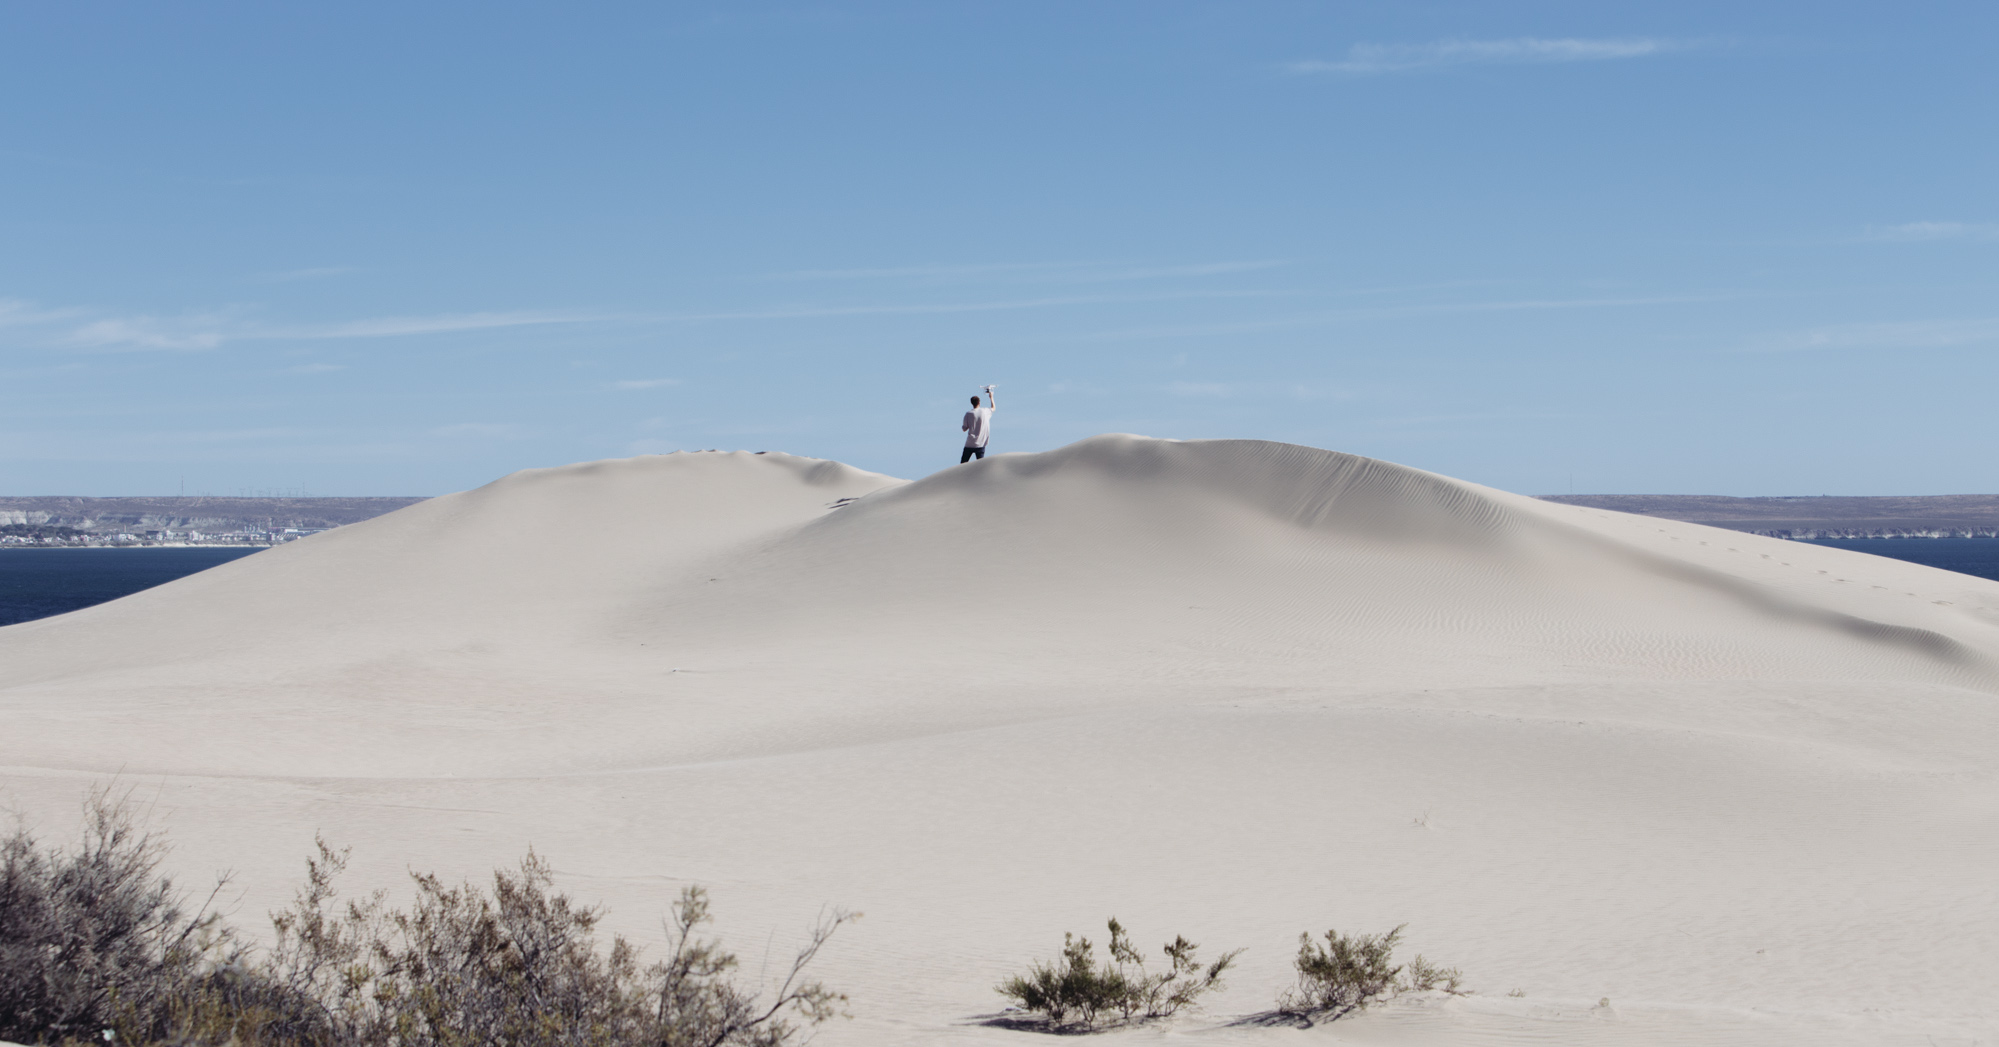 There are some excellent sand dunes at Punta Este on the way there.